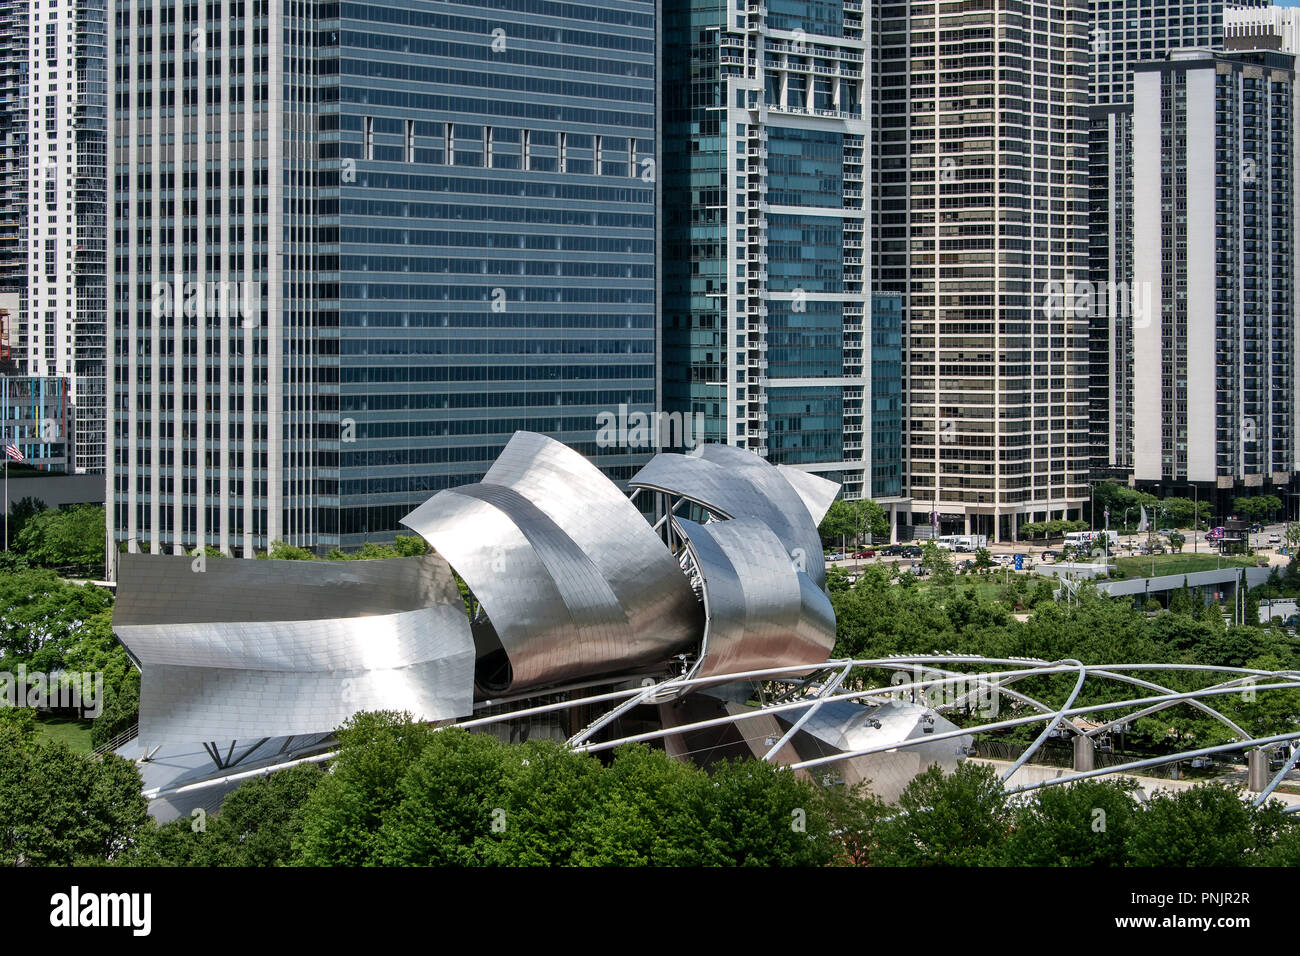 Jay Pritzker Pavilion by architect Frank O. Gehry im Millennium Park, Downtown Chicago, IL. - Stock Image